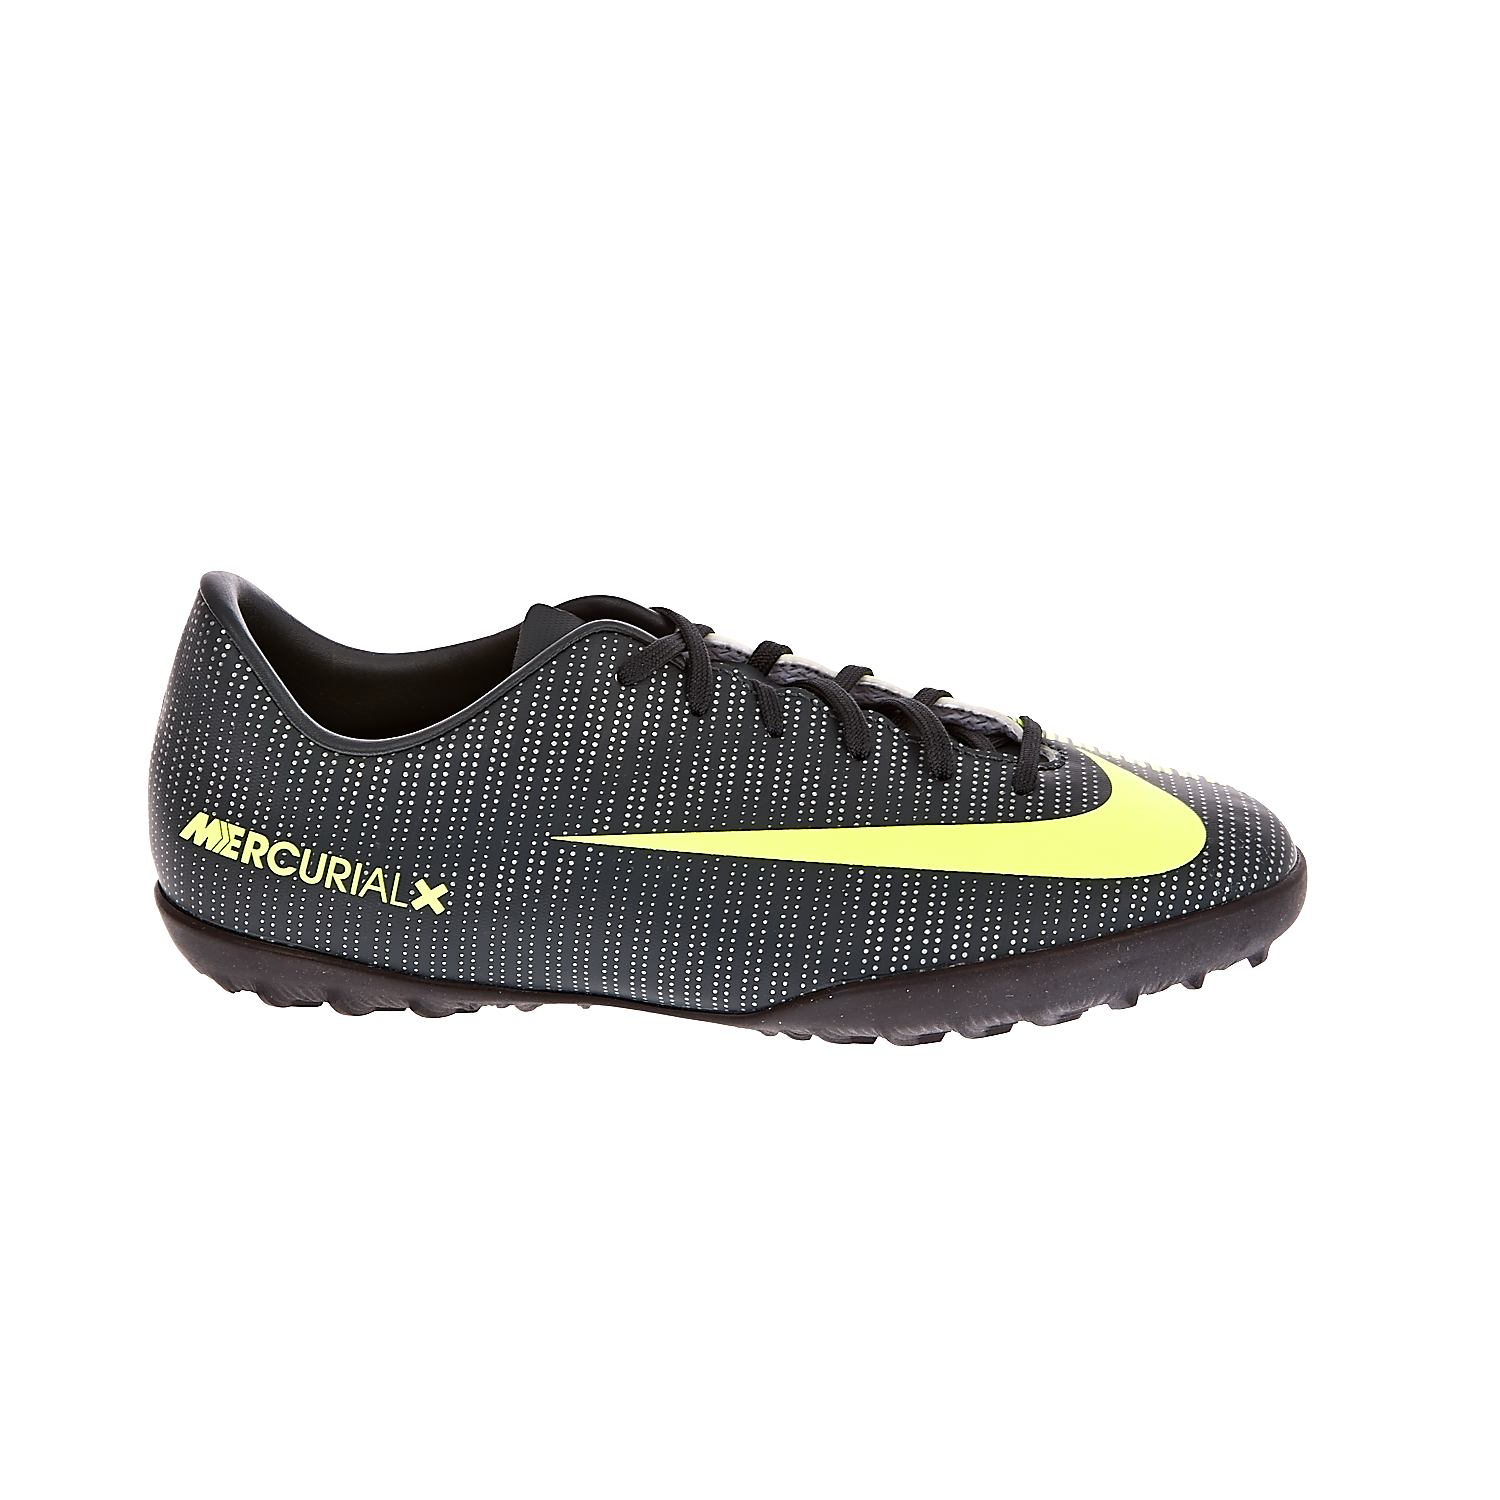 NIKE – Ποδοσφαιρικά παπούτσια JR MERCURIALX VICTRY 6 CR7 TF μαύρα